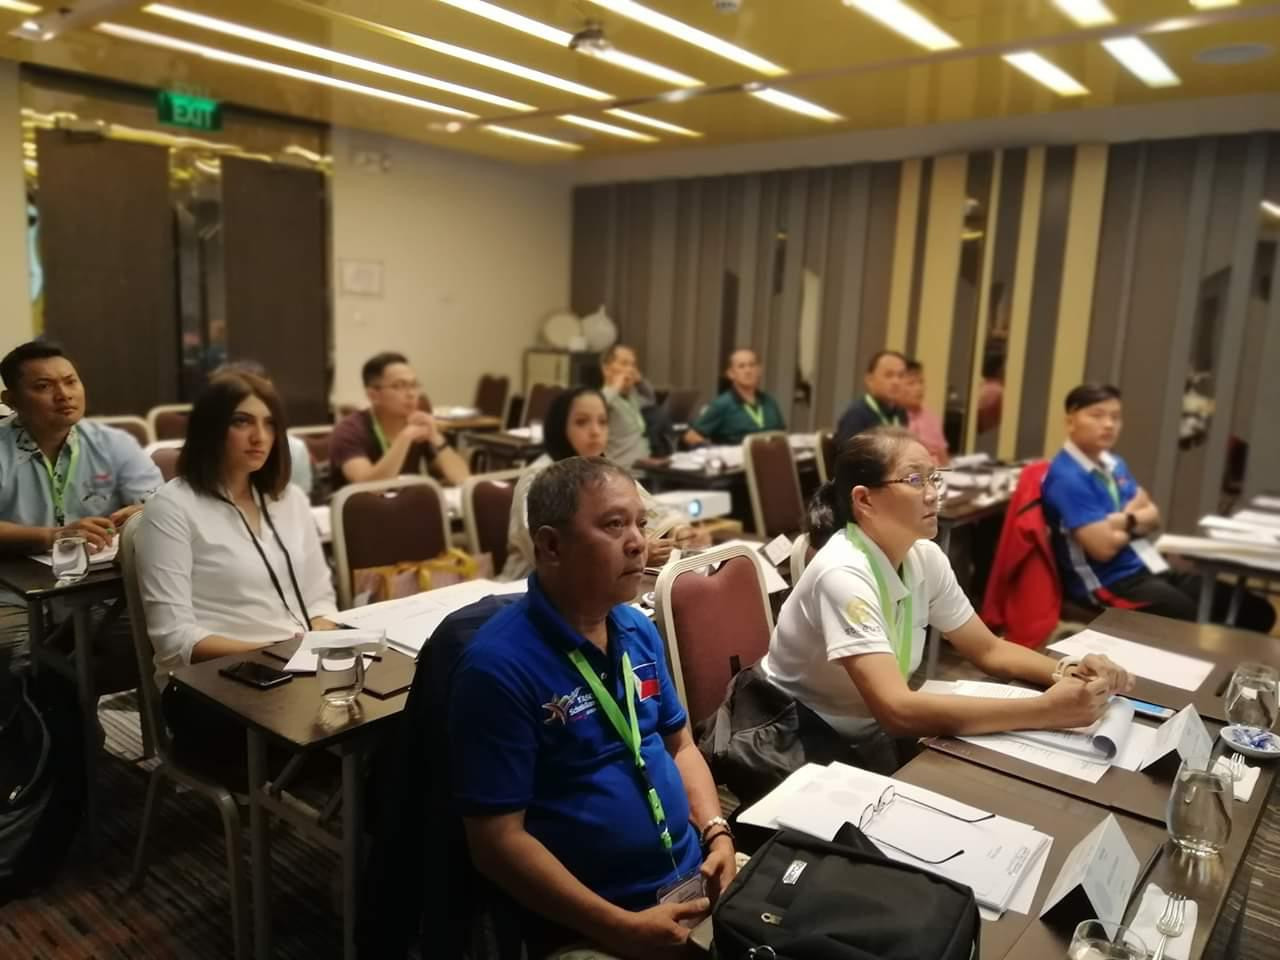 A training course for athletics officials has been held as part of the build-up to the 2020 ASEAN Para Games in Manila ©APC